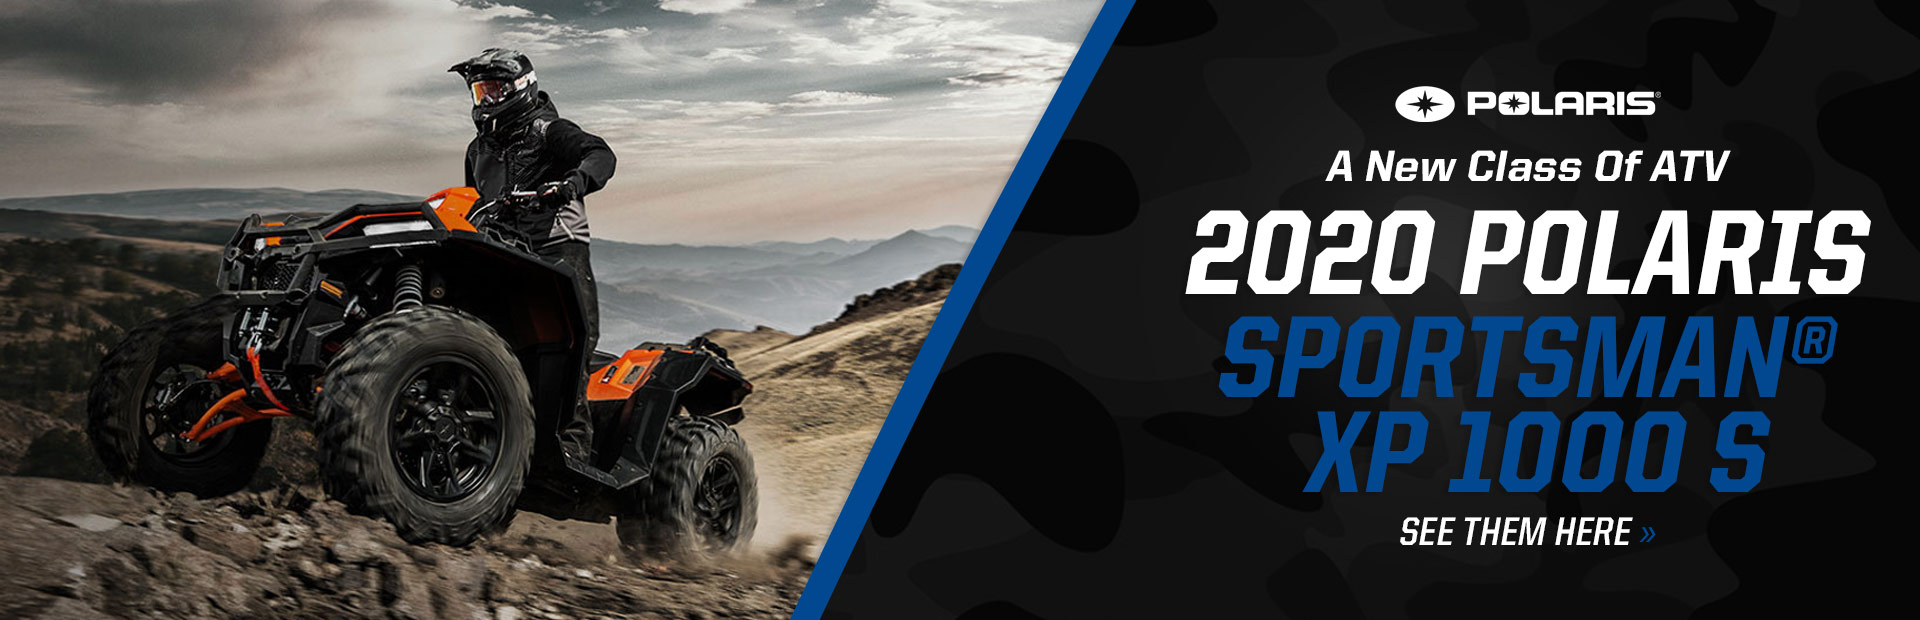 See our 2020 Polaris Sportsman® XP 1000 S inventory now. Click here!